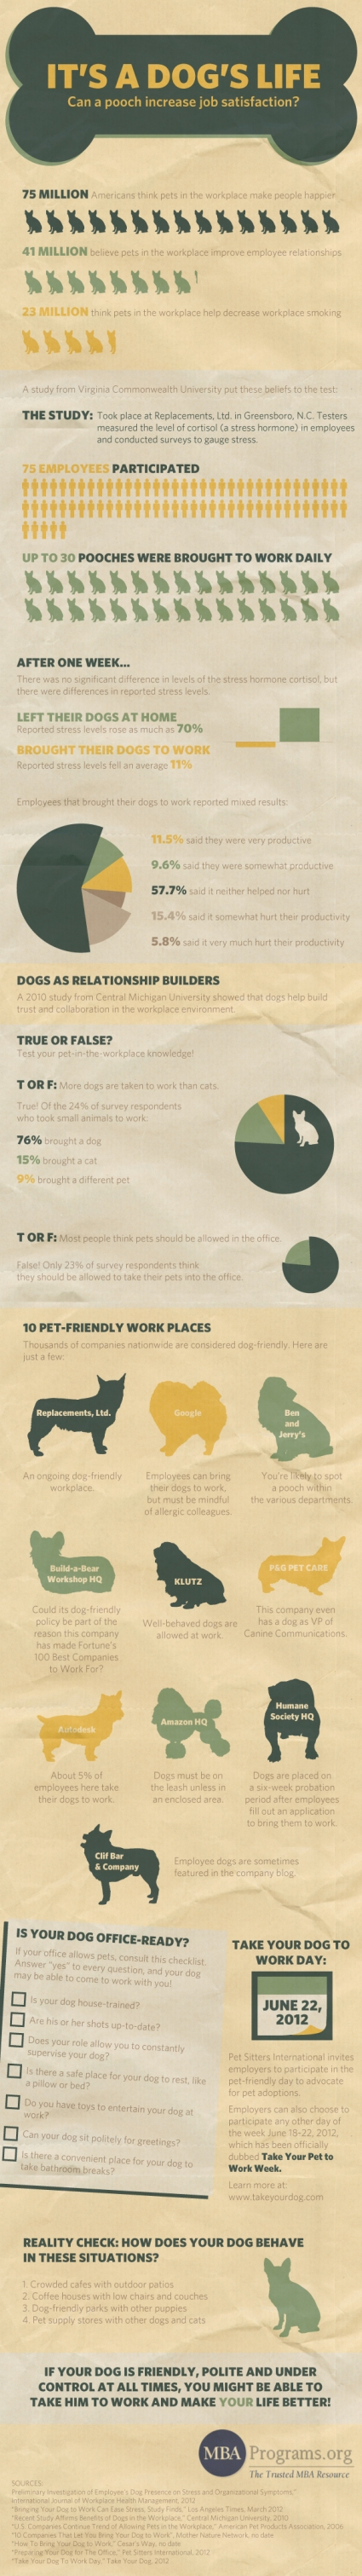 Can a dog increase job satisfaction? [infographic]